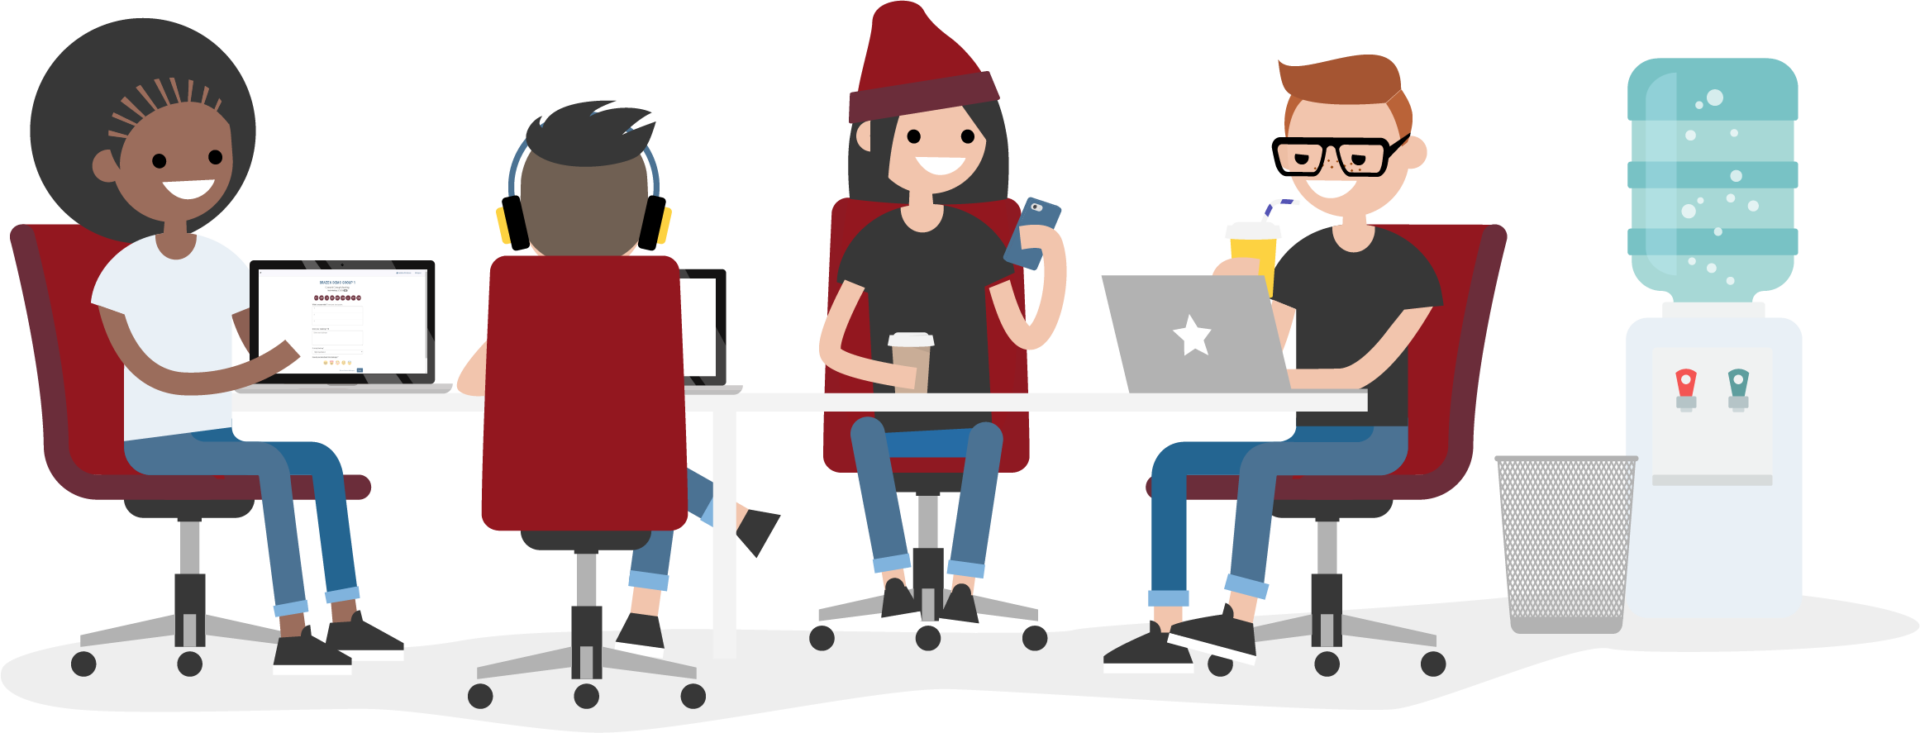 graphic of tech team working together at a table